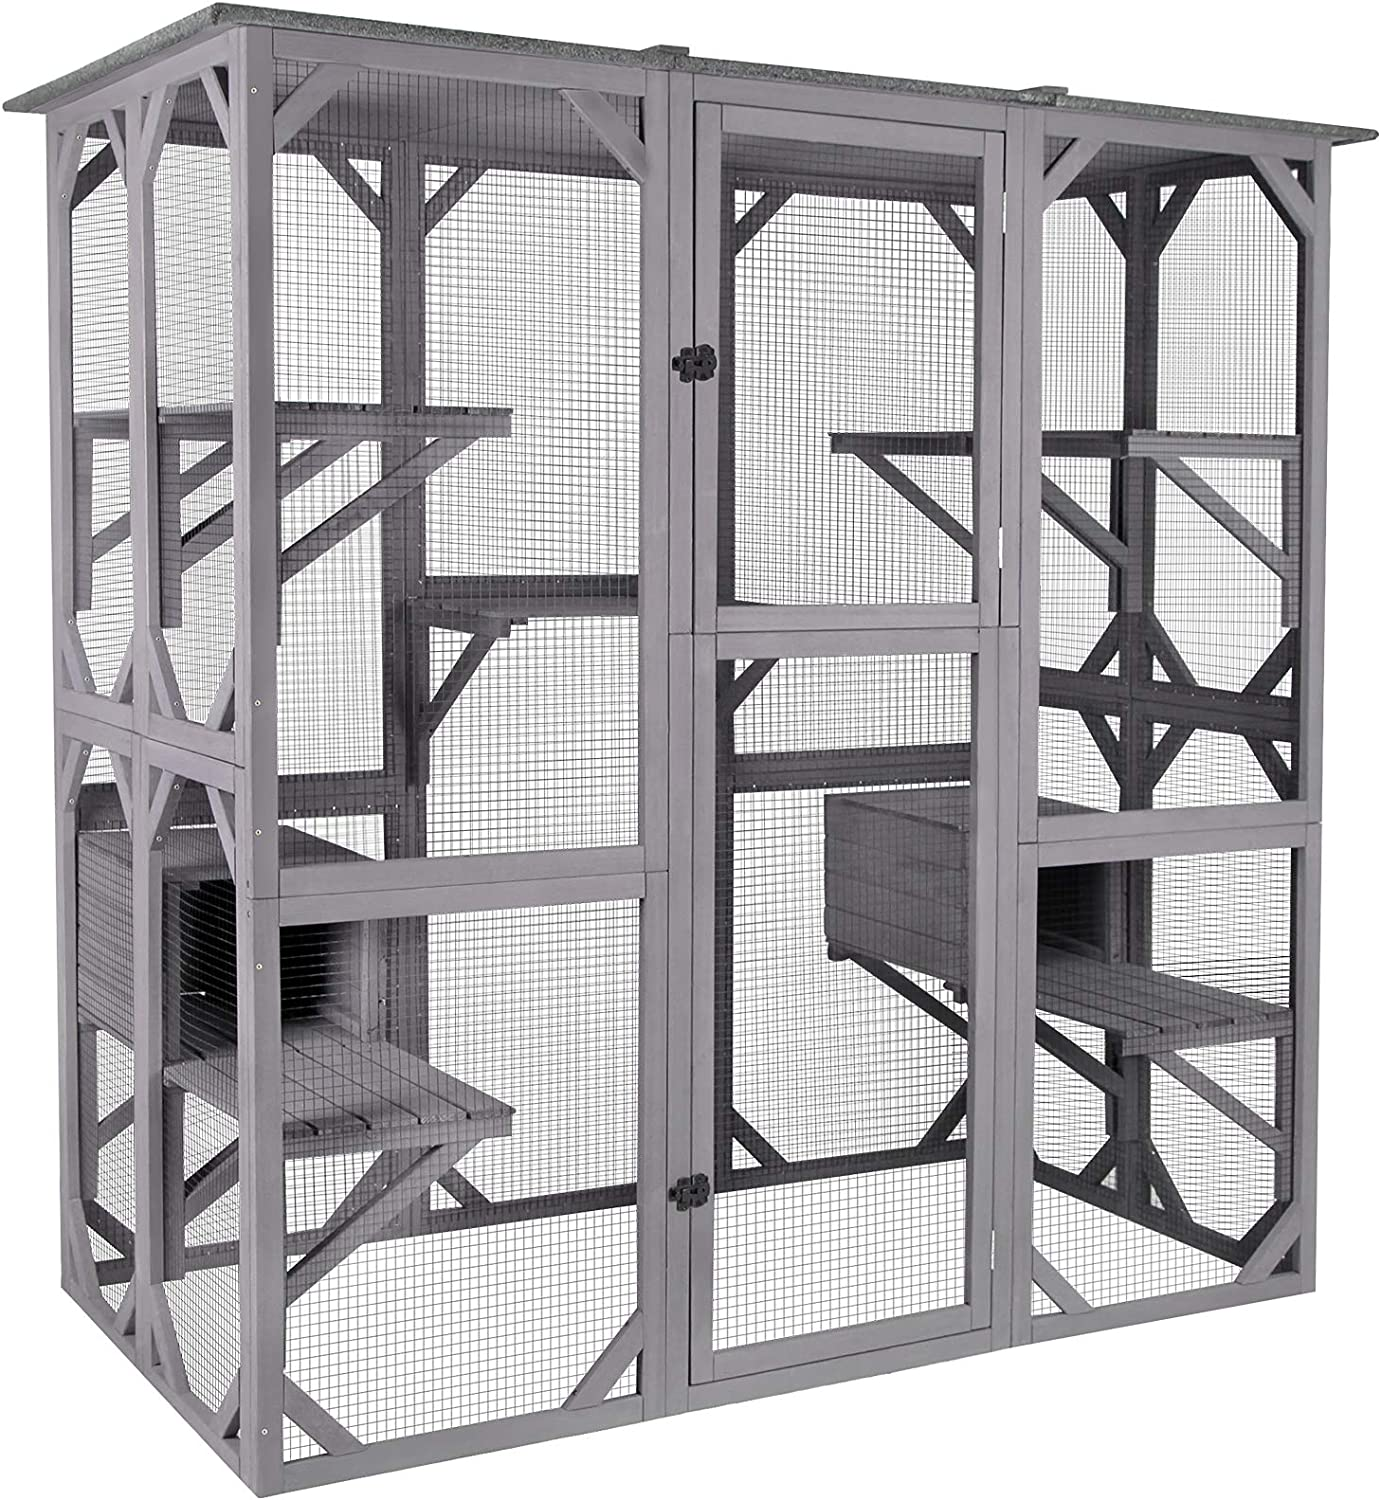 Aivituvin Cat House Outdoor Catio Kitty Enclosure With Super Large Enter Door Wooden Cat Cage Condo Indoor Playpen With Platforms Small House 71 Inch Pet Supplies